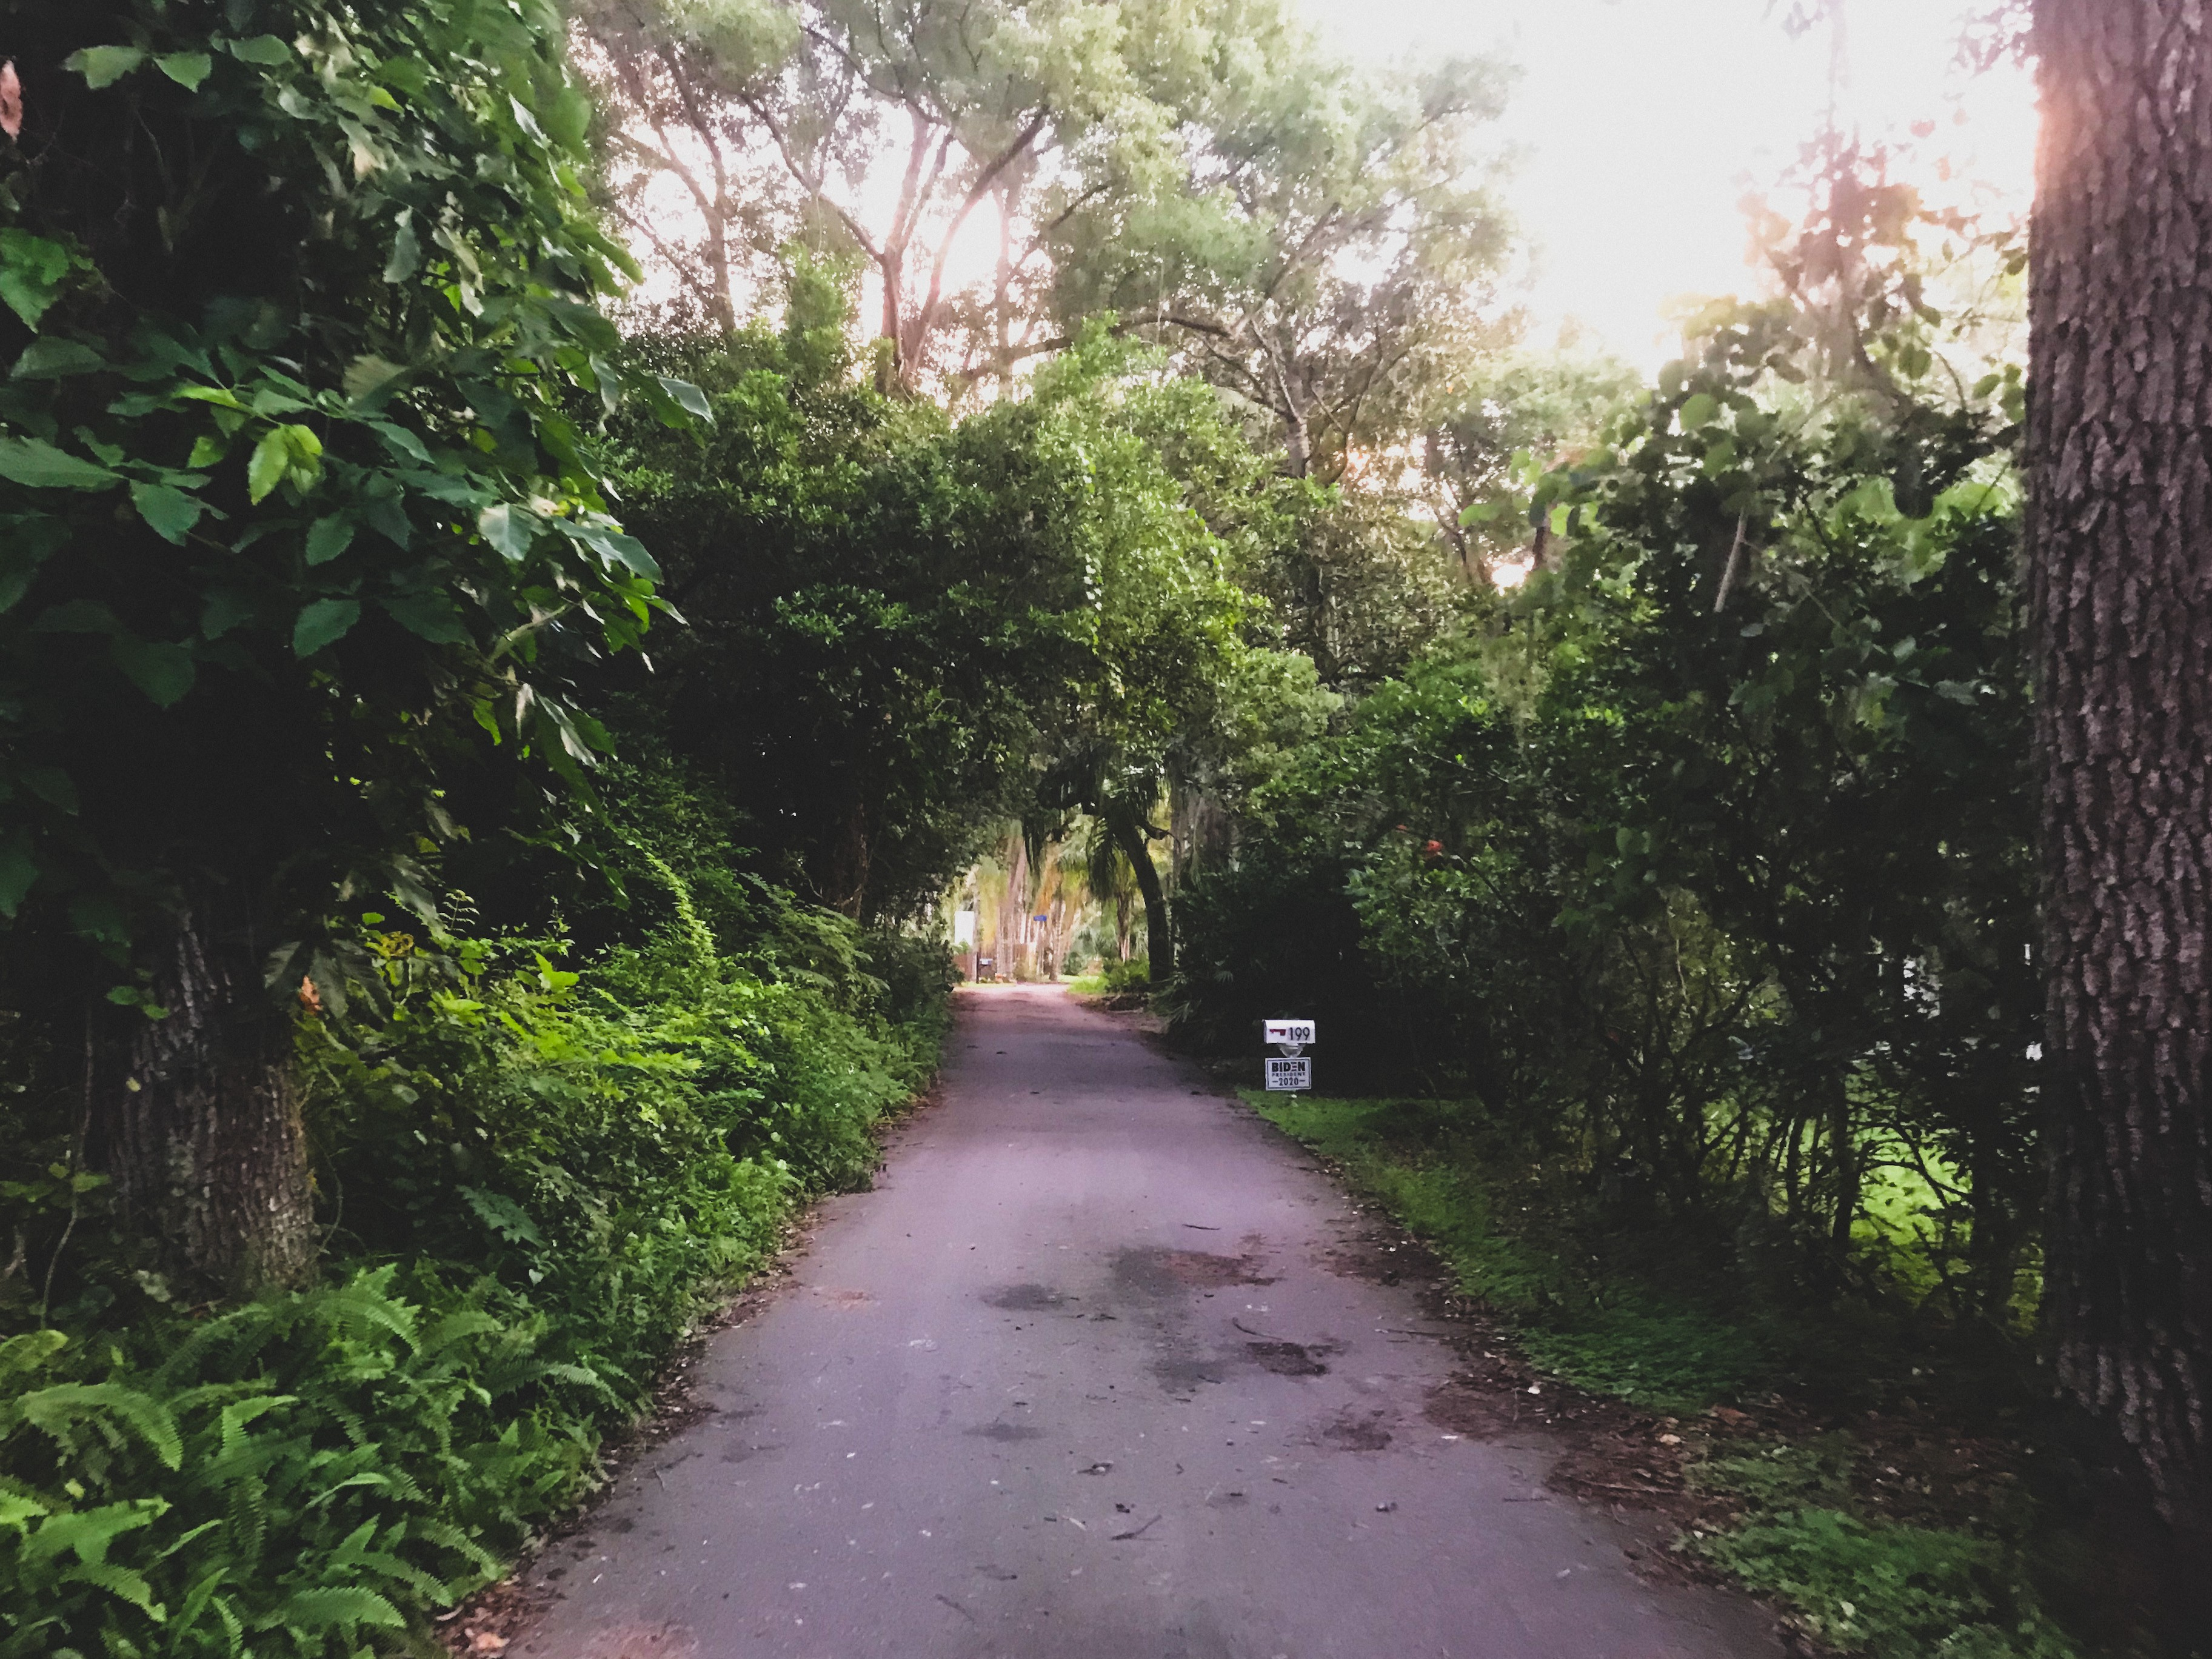 A small road lined with lush tropical foliage, a Biden sign halfway down the road.